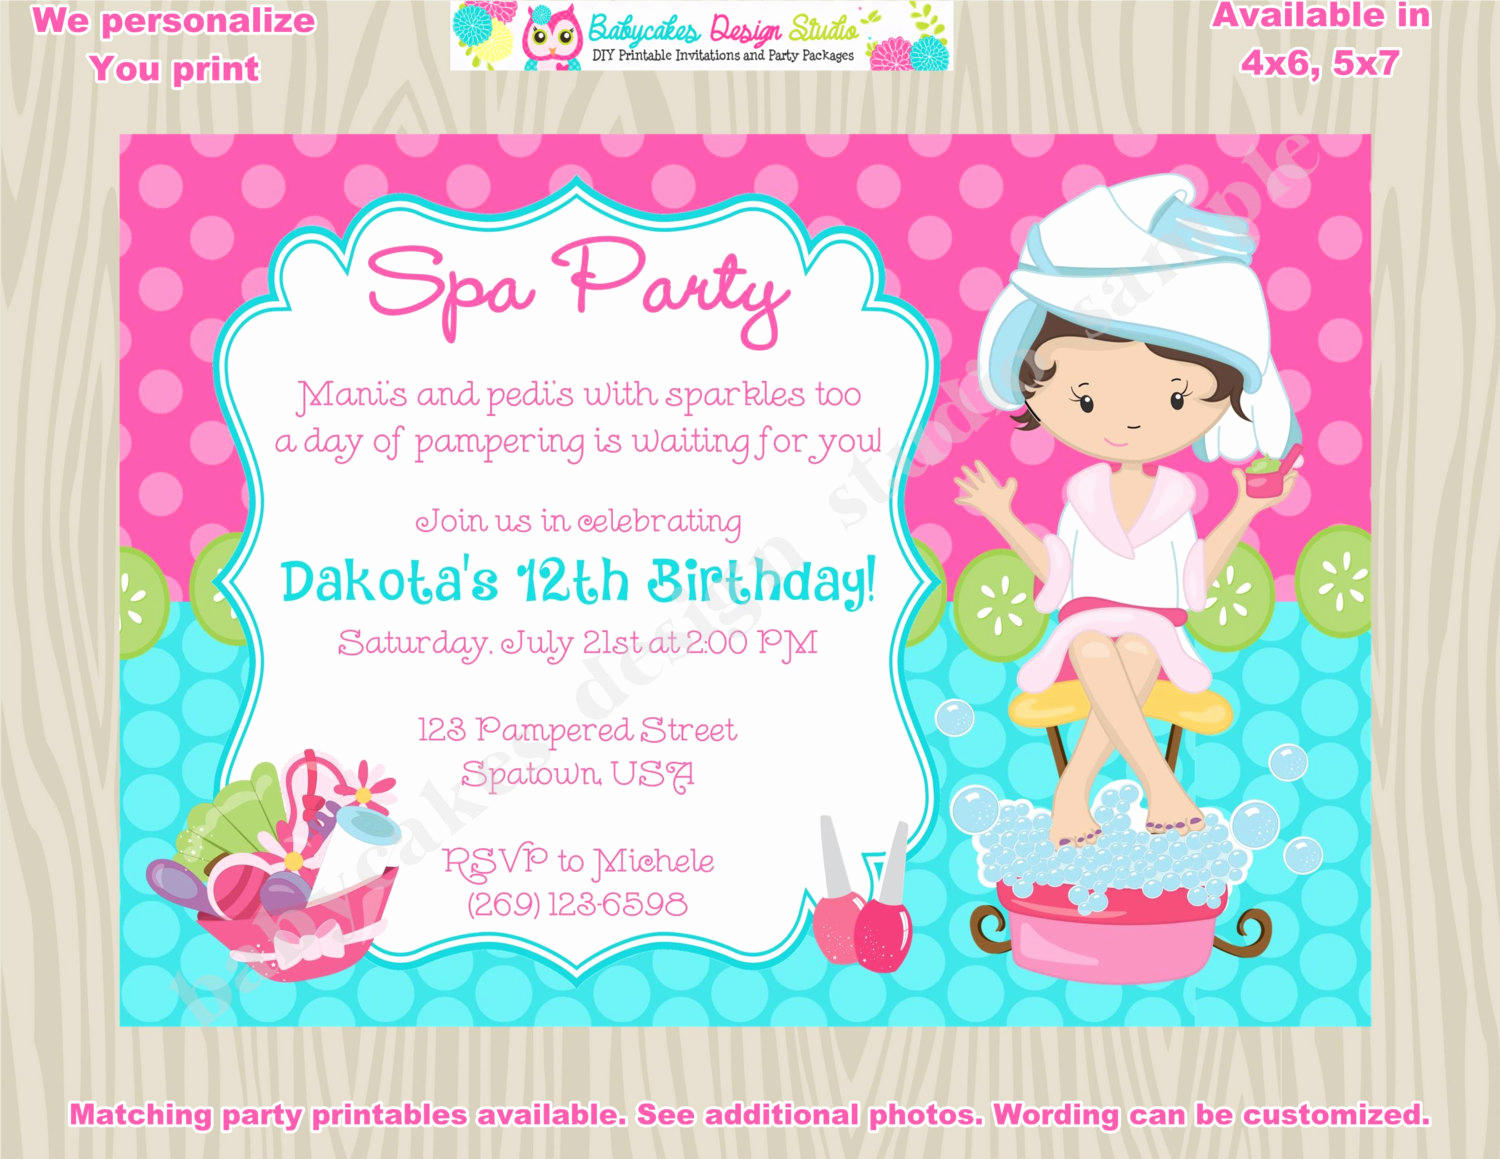 Spa Party Invitation Wording Inspirational Spa Party Invitation Spa Birthday Invitation Invite Spa Day